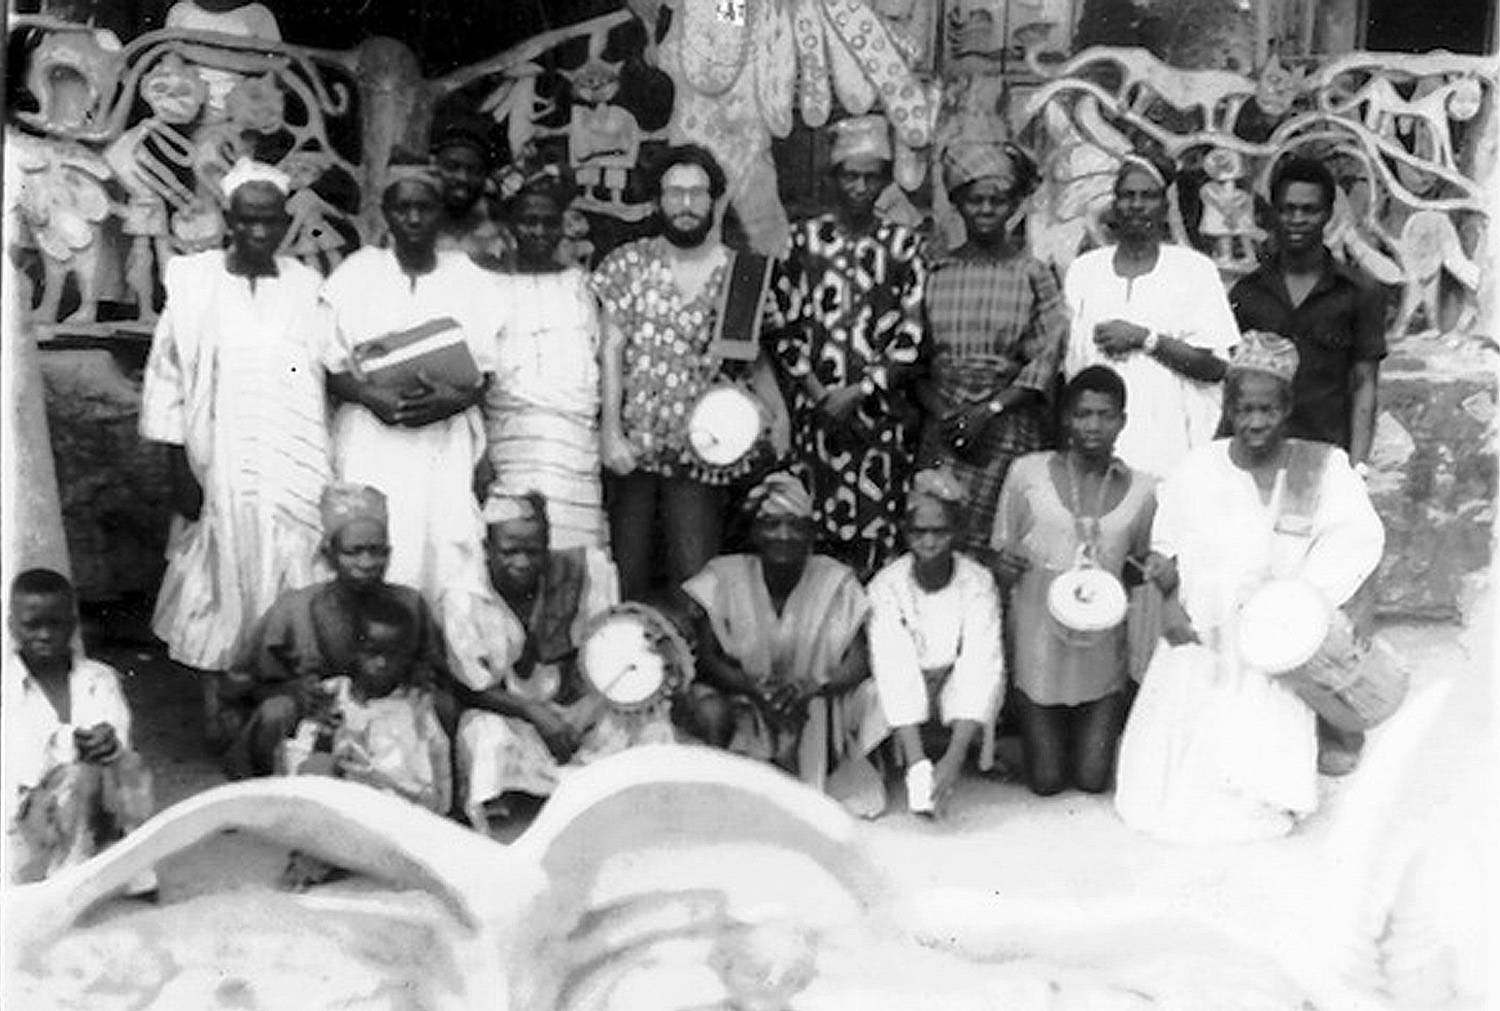 The Ritual Orchestra for the weekly ọ̀sẹ̀-ceremony in front of the house of Adunni Olorisha Susanne Wenger,Ibokún Road, Òṣogbo,1977. With Victor Manfredi, dùndùn drummer Ayan Kolade, Adigun Olosun, famous dancer Sango Sodo with his wife, who is one of the oriki singers, Iya Ikirun and Ayan Sipe, famous bàtá drummer.©Victor Manfredi